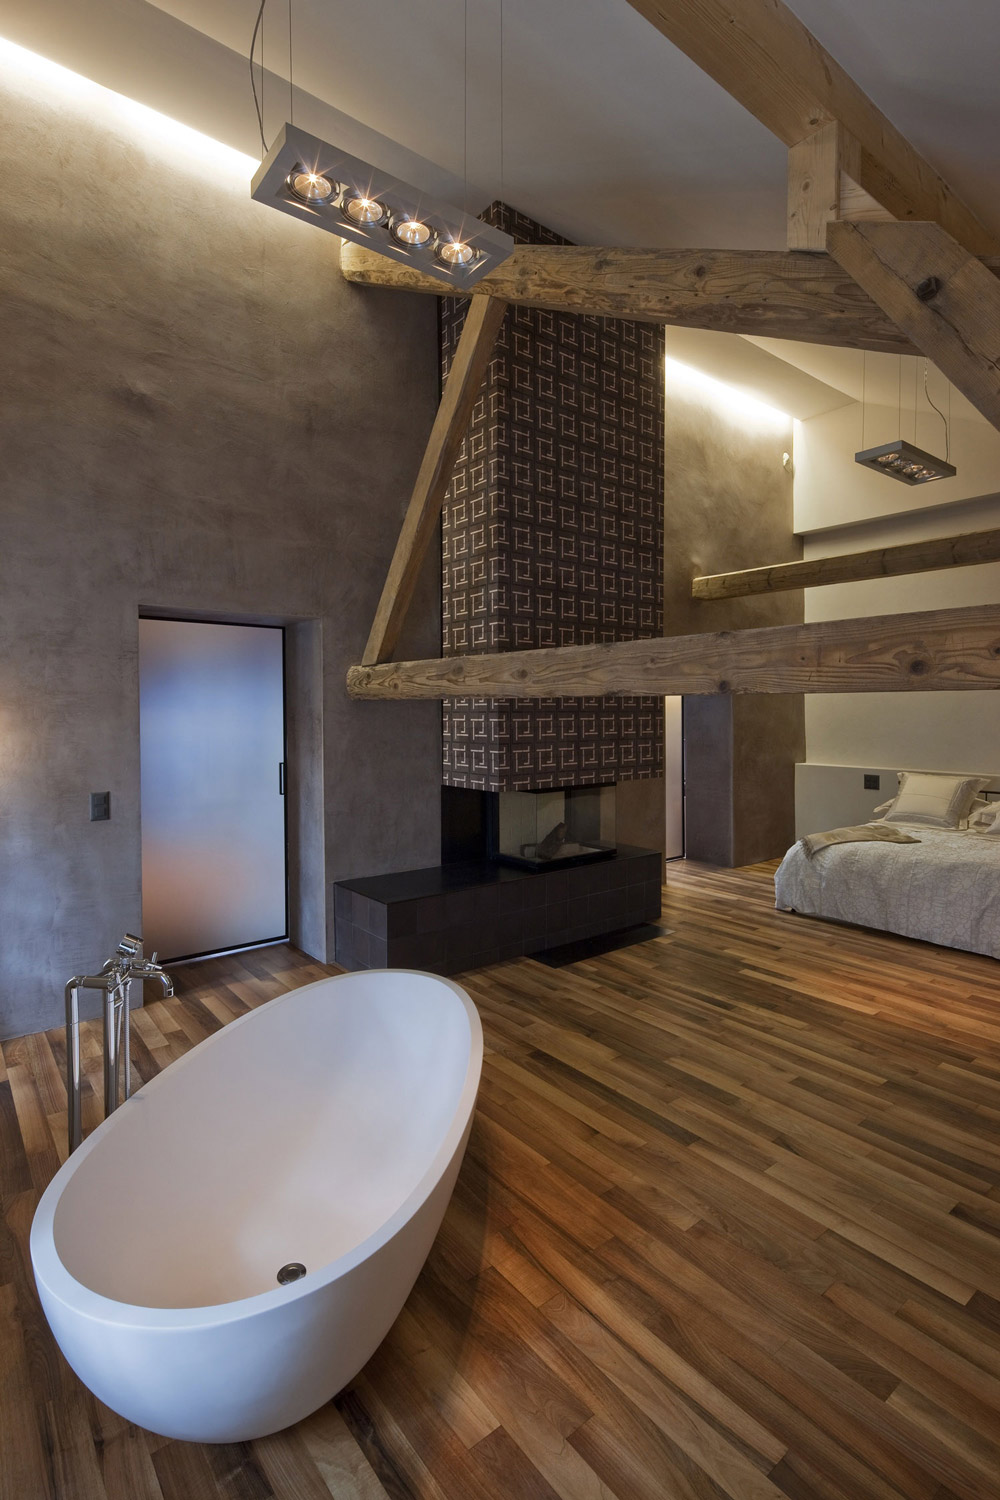 Bath in Bedroom, Modern Fireplace, Farmhouse Conversion in Genf, Switzerland